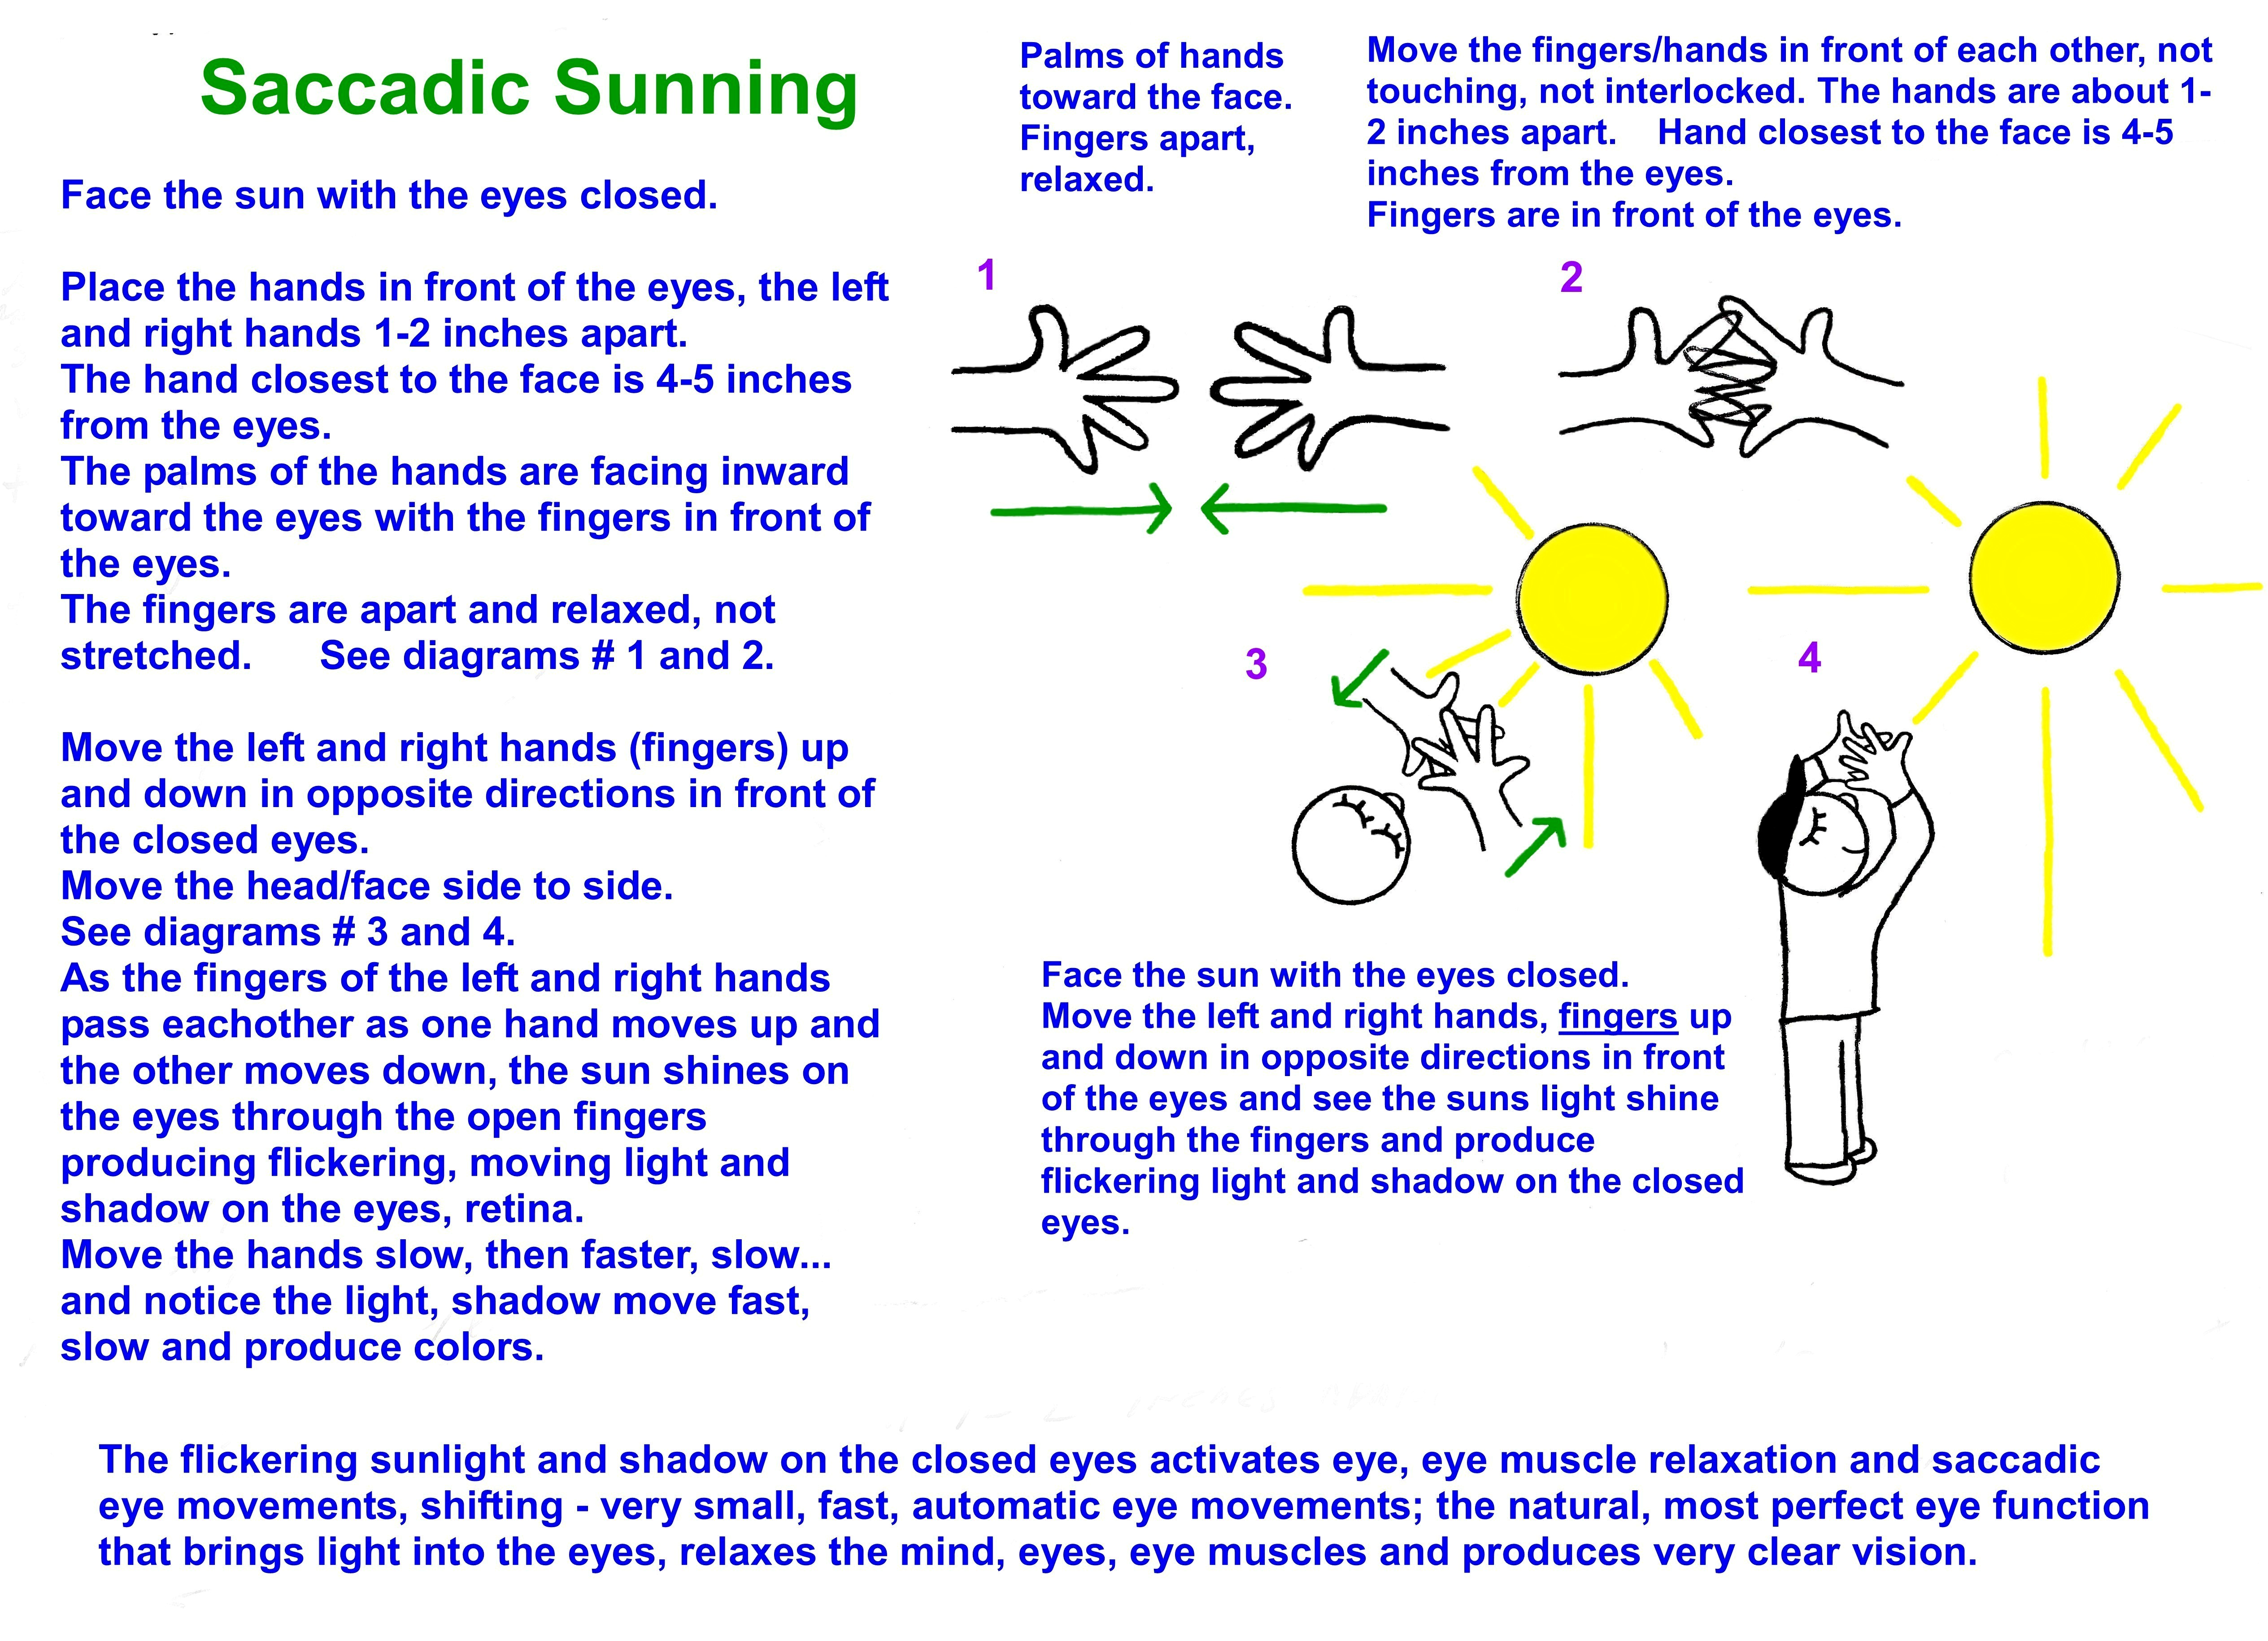 Saccadic Sunning directions